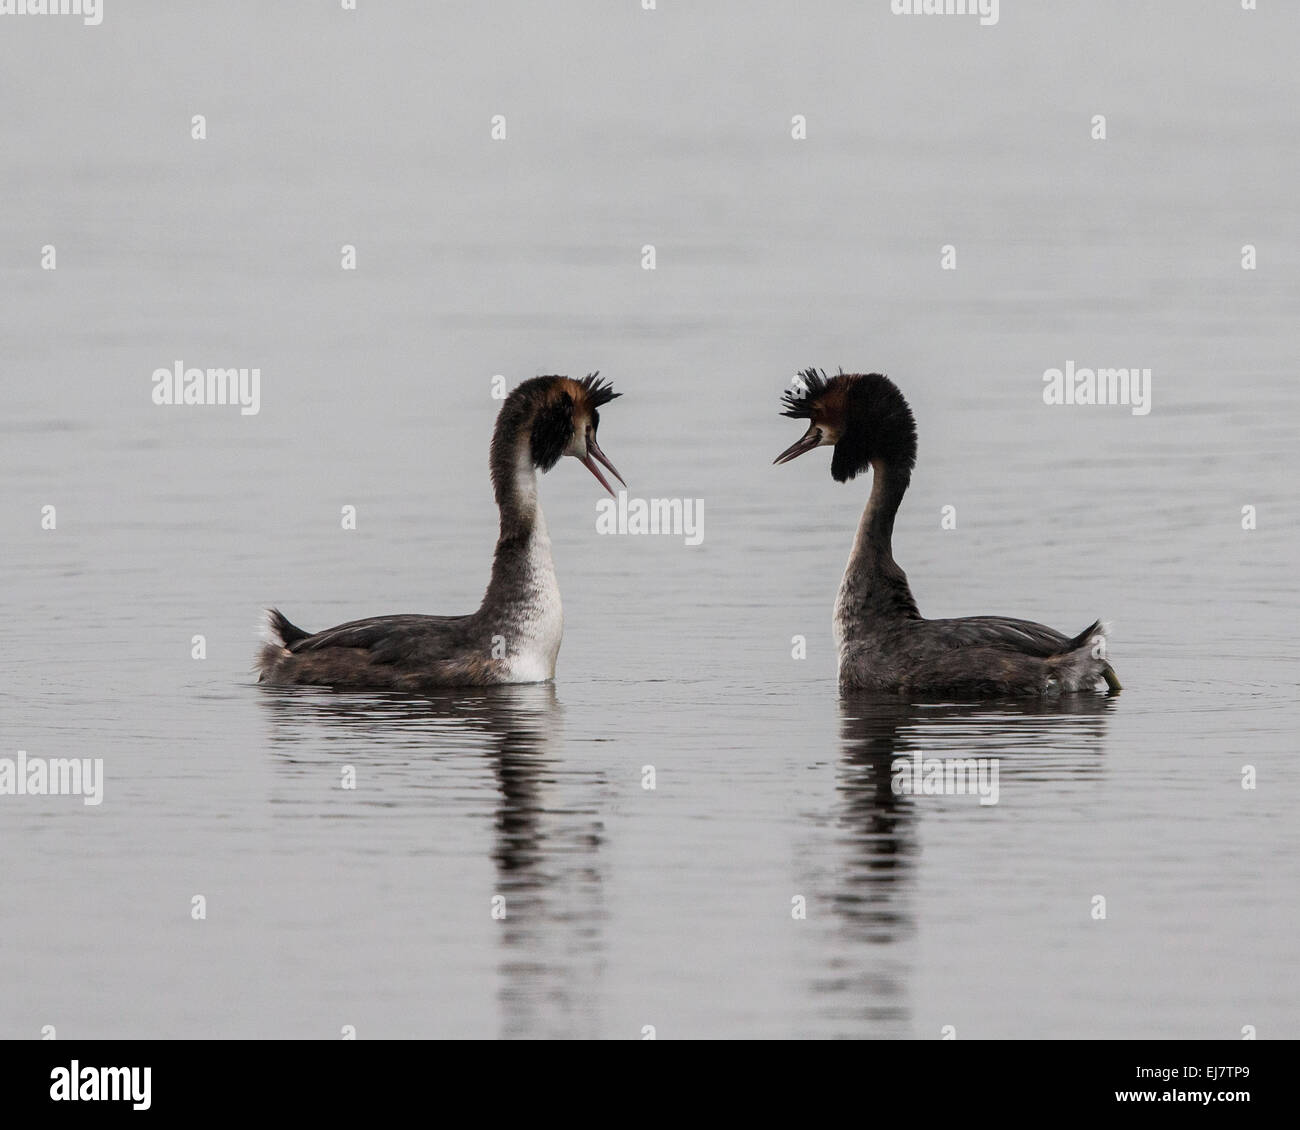 A pair of Great Crested Grebes participating in their courtship dance where they rear up with weed in their beaks - Stock Image